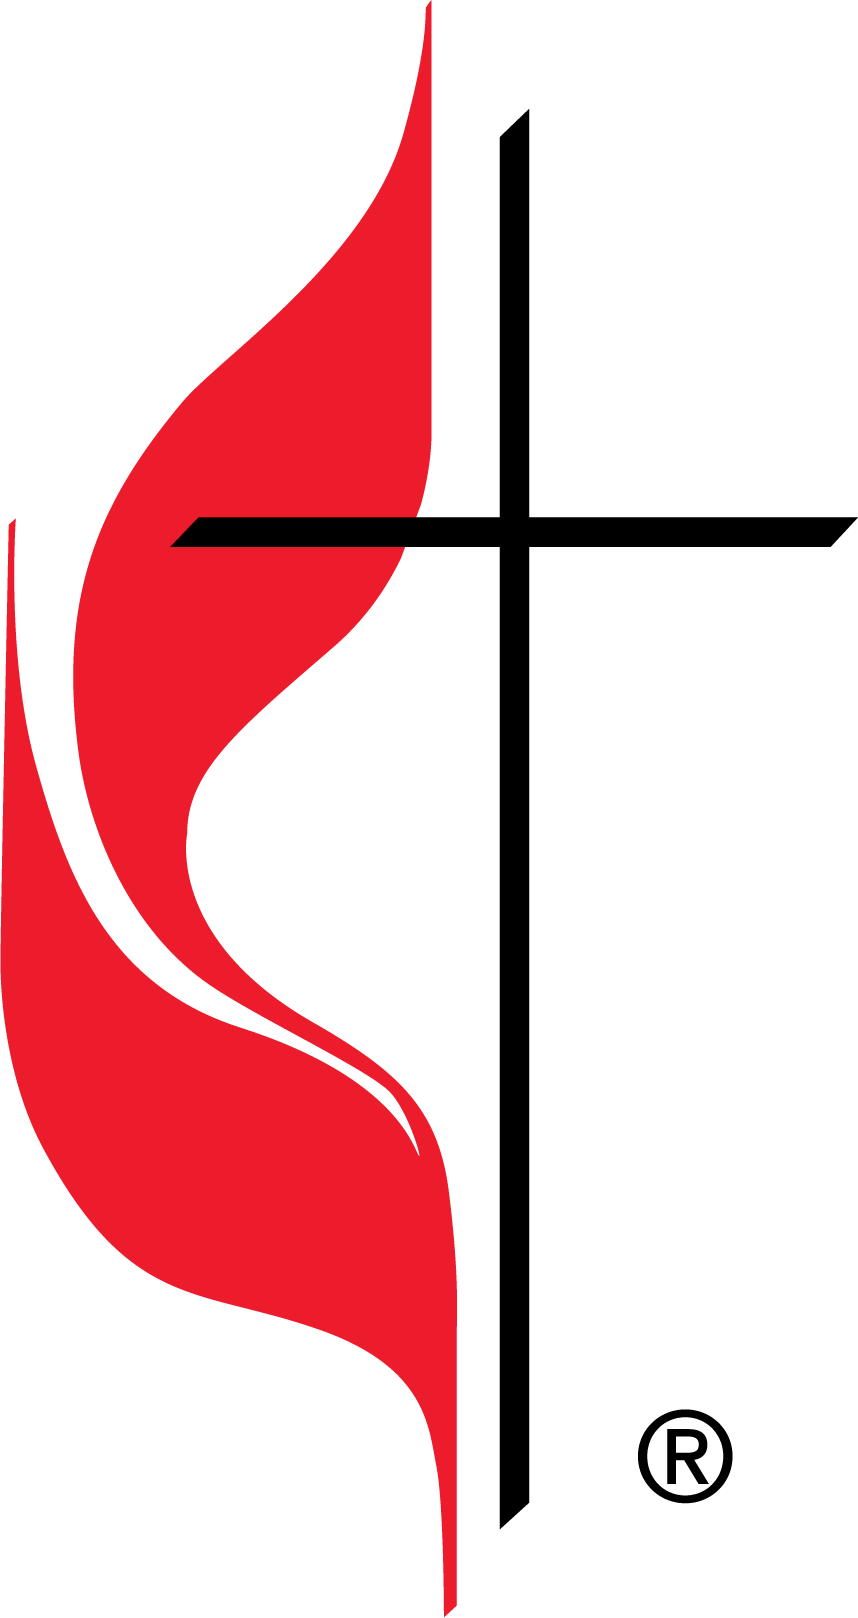 Logo of the United Methodist Church